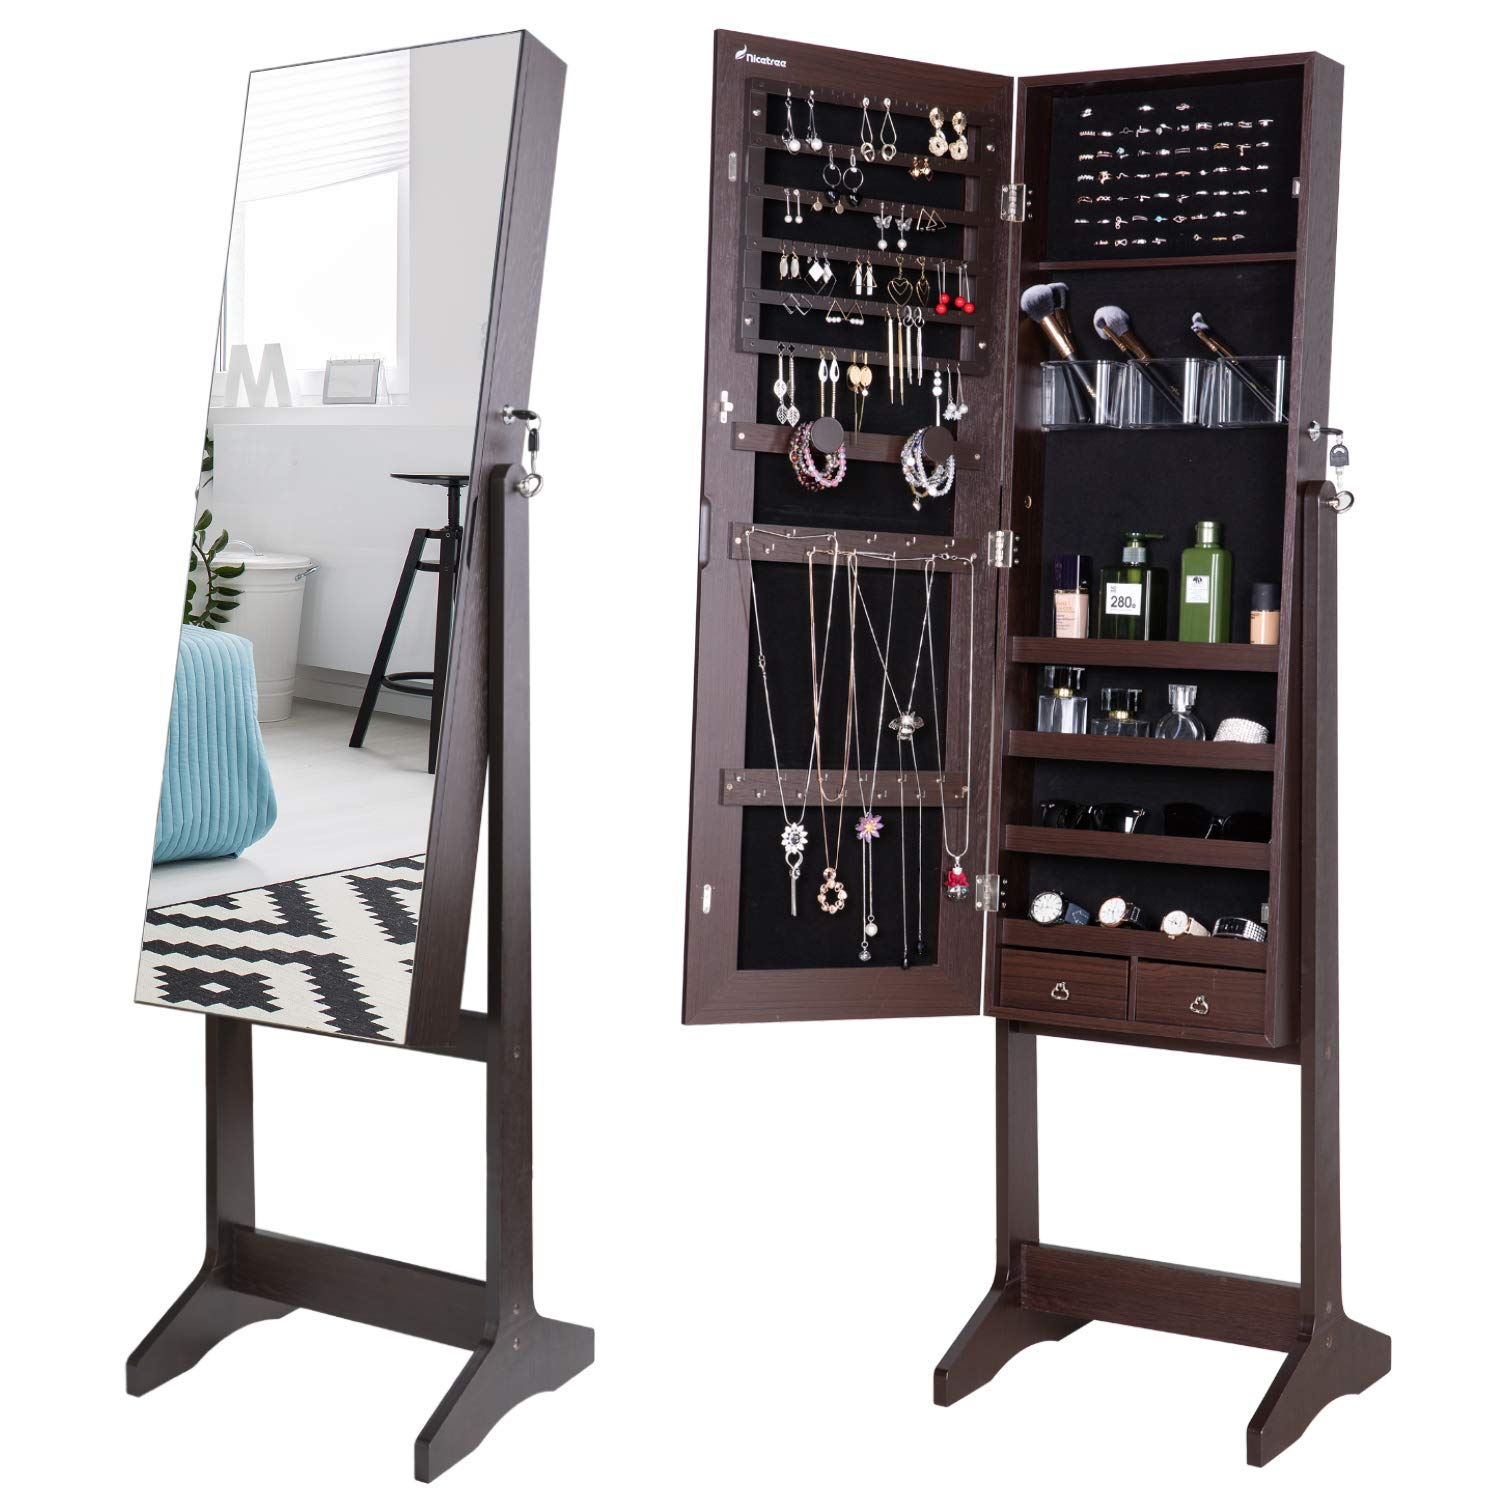 Nicetree Jewelry Cabinet with Full-Length Mirror, Standing Lockable Jewelry Armoire Organizer, 3 Angel Adjustable, Brown by Nicetree